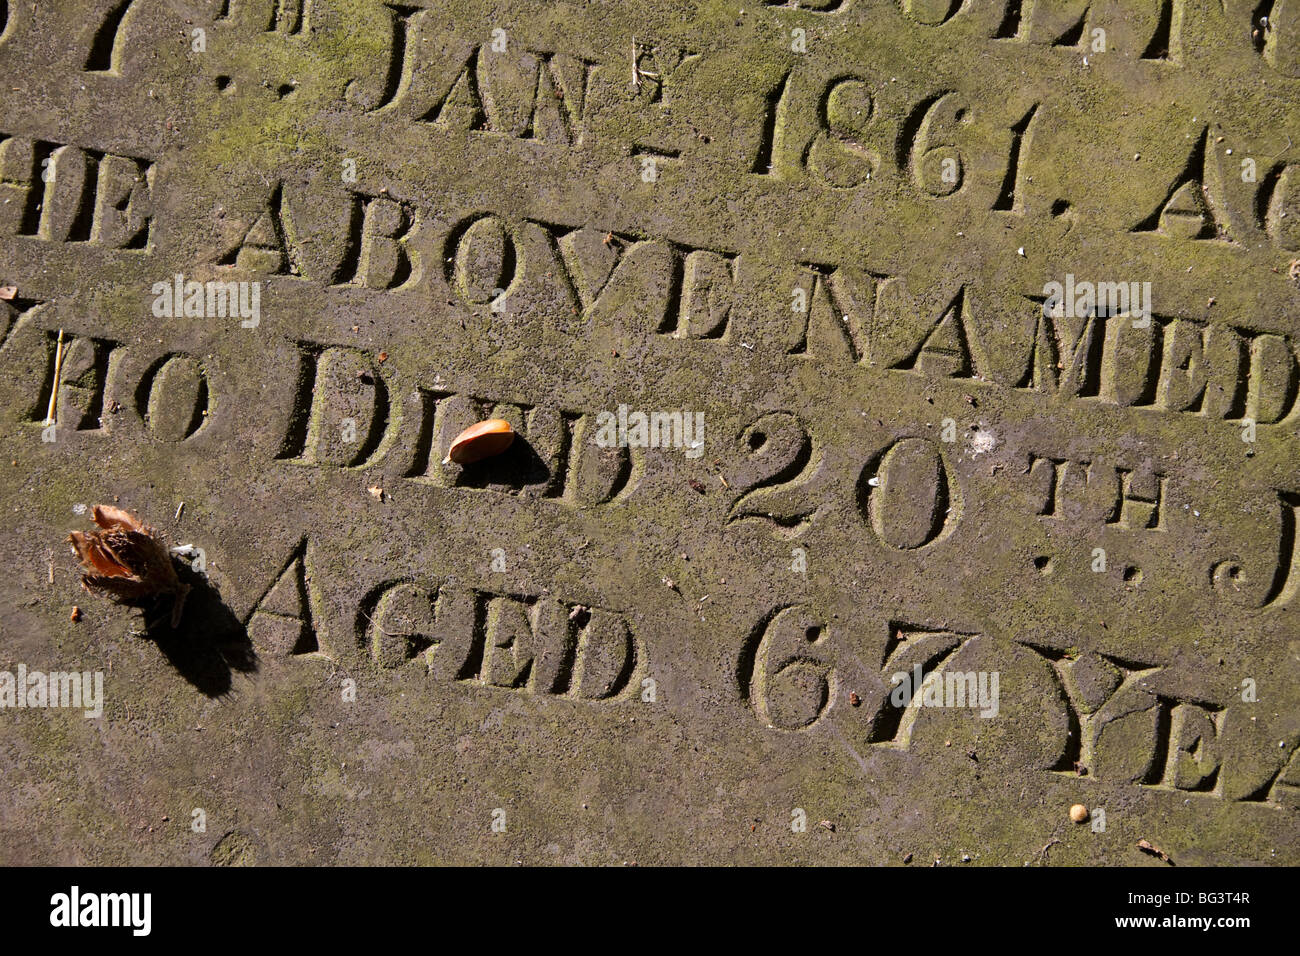 Mortality and life expectancy Victorian Scotland - man died aged 67 - typical healthy life span for mid-1800s ripe - Stock Image